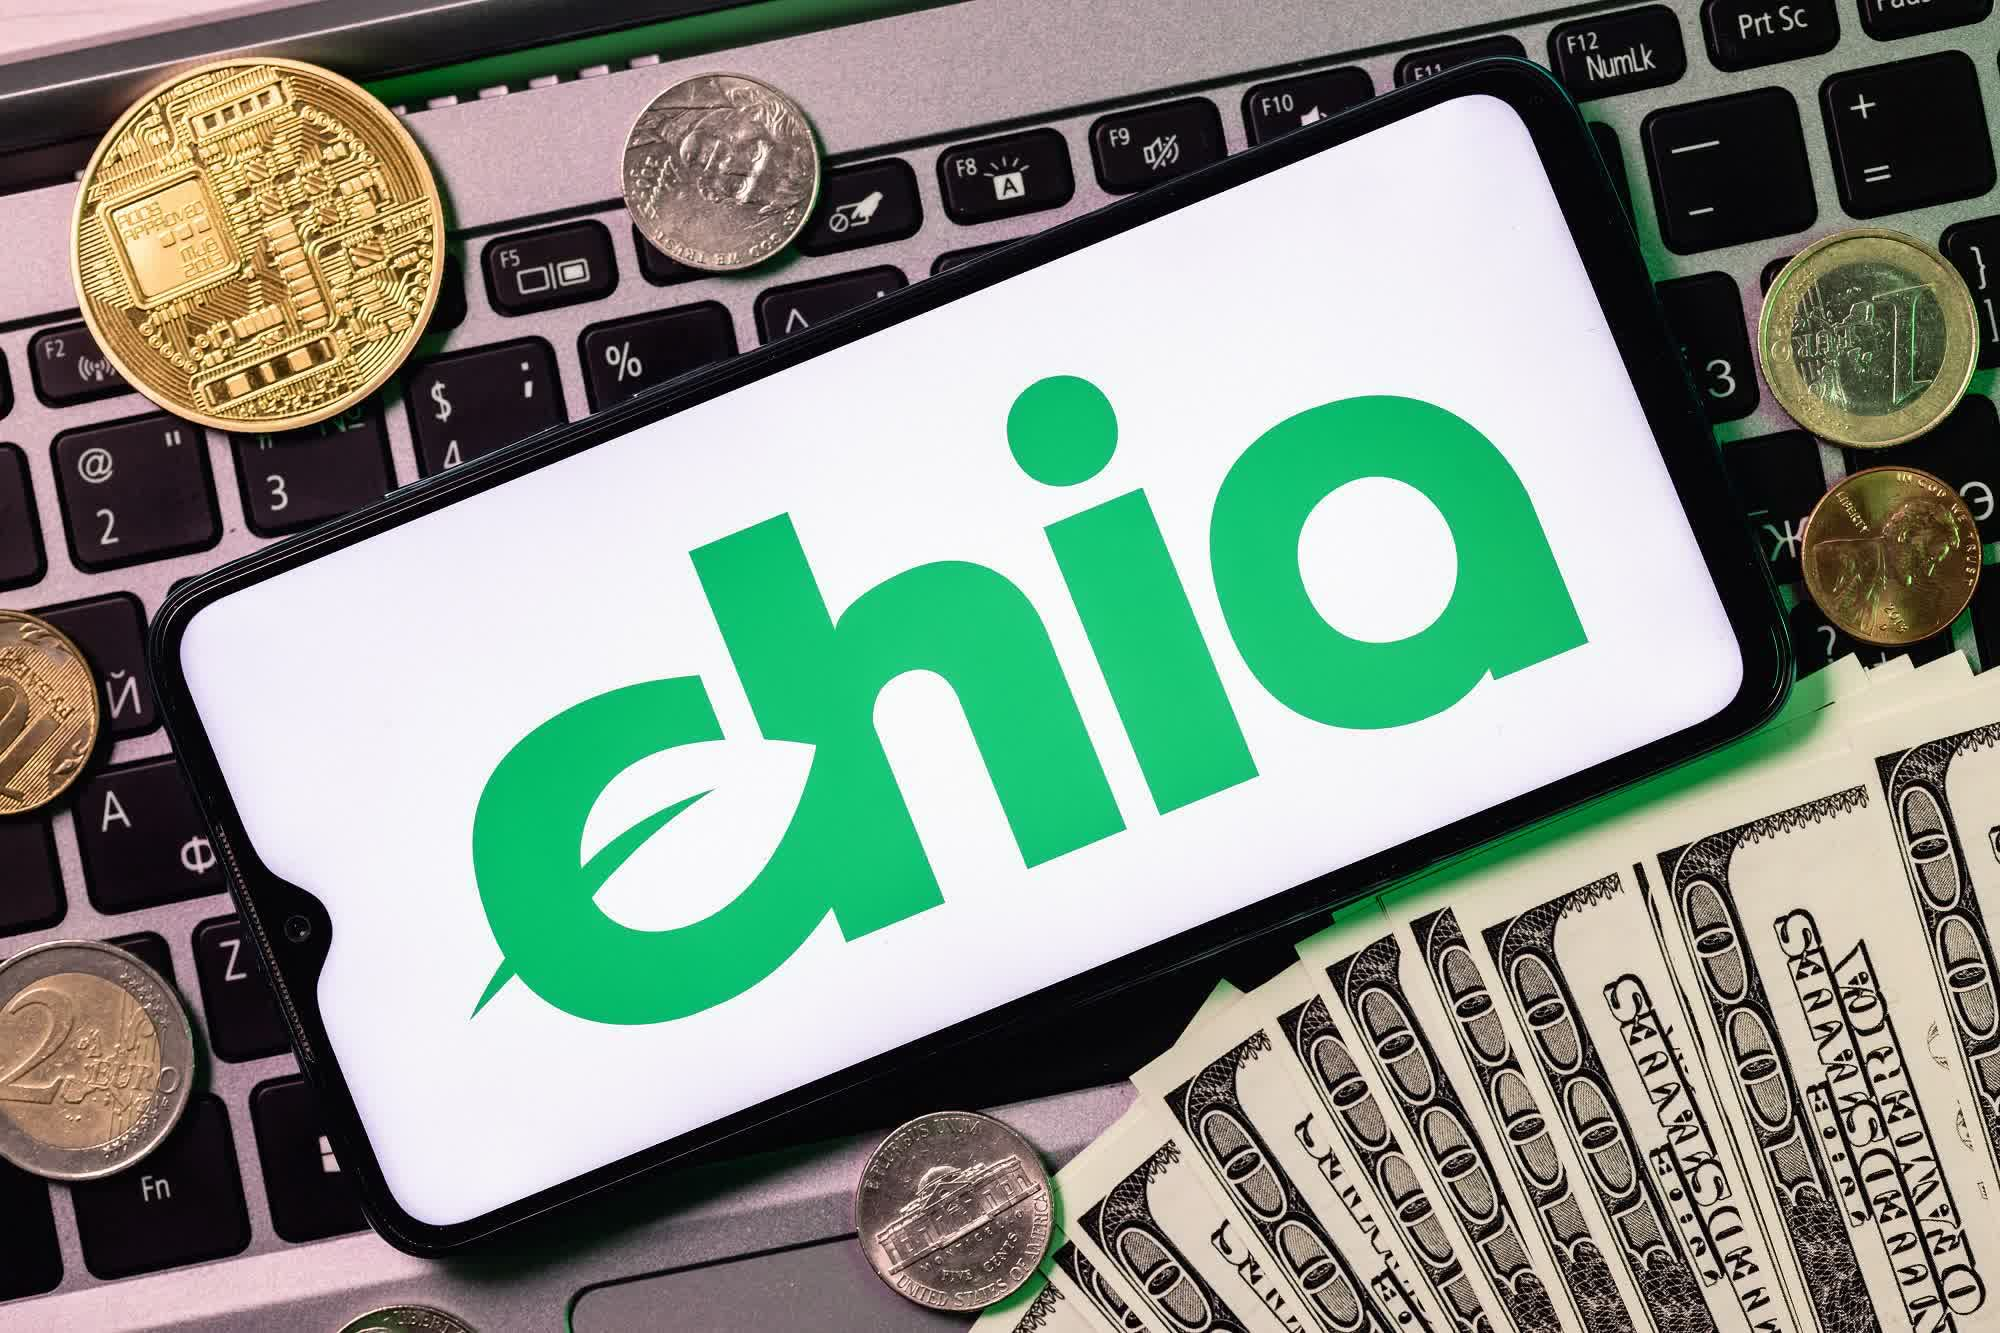 Chia crypto mining spurs 500% jump in Adata SSD sales, warranty warning from Galax